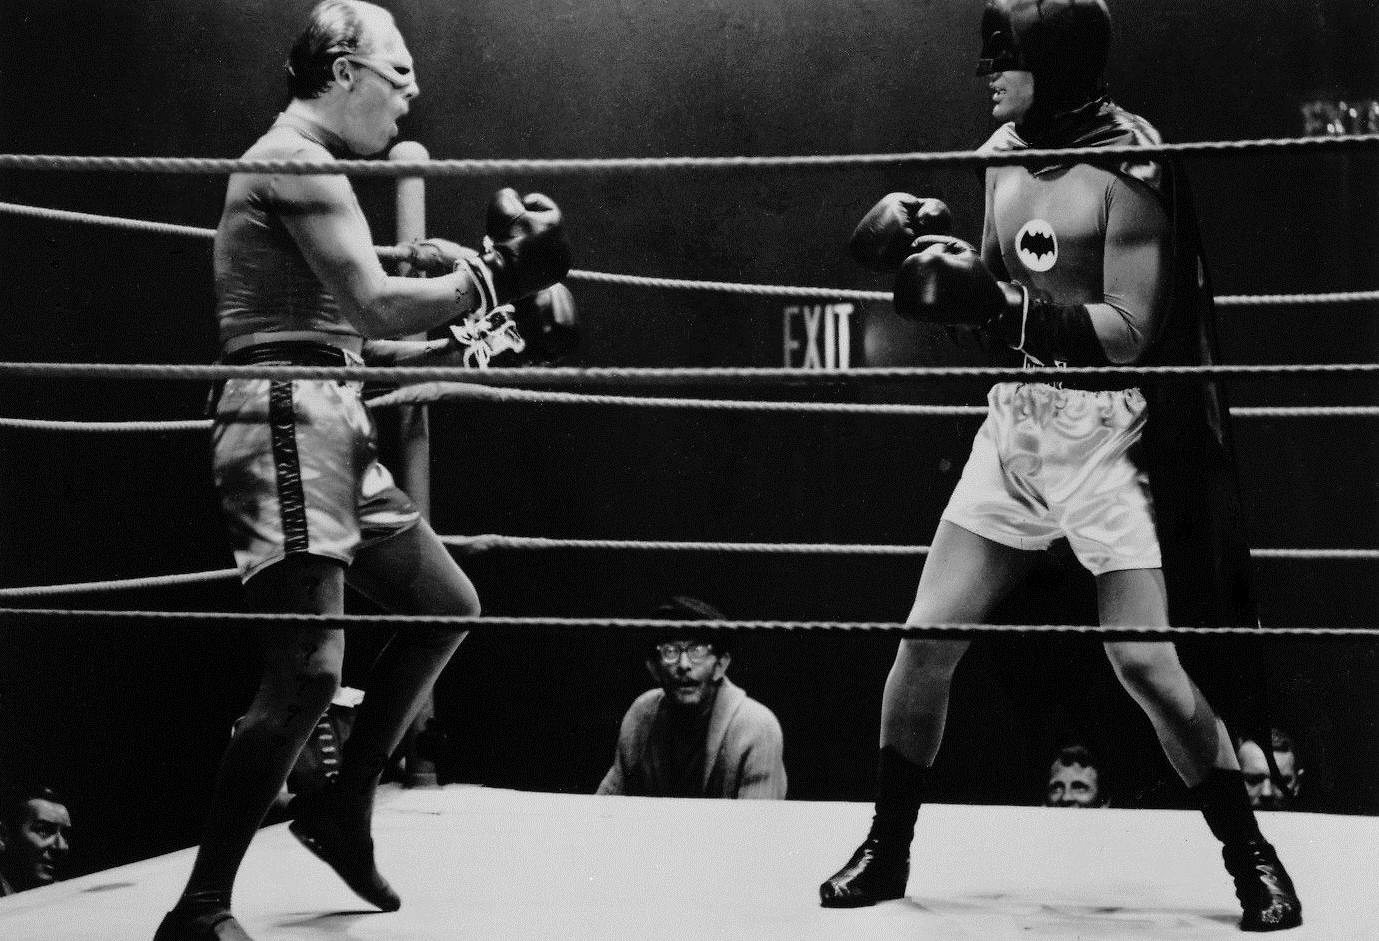 Batman from the 1960s in a boxing ring